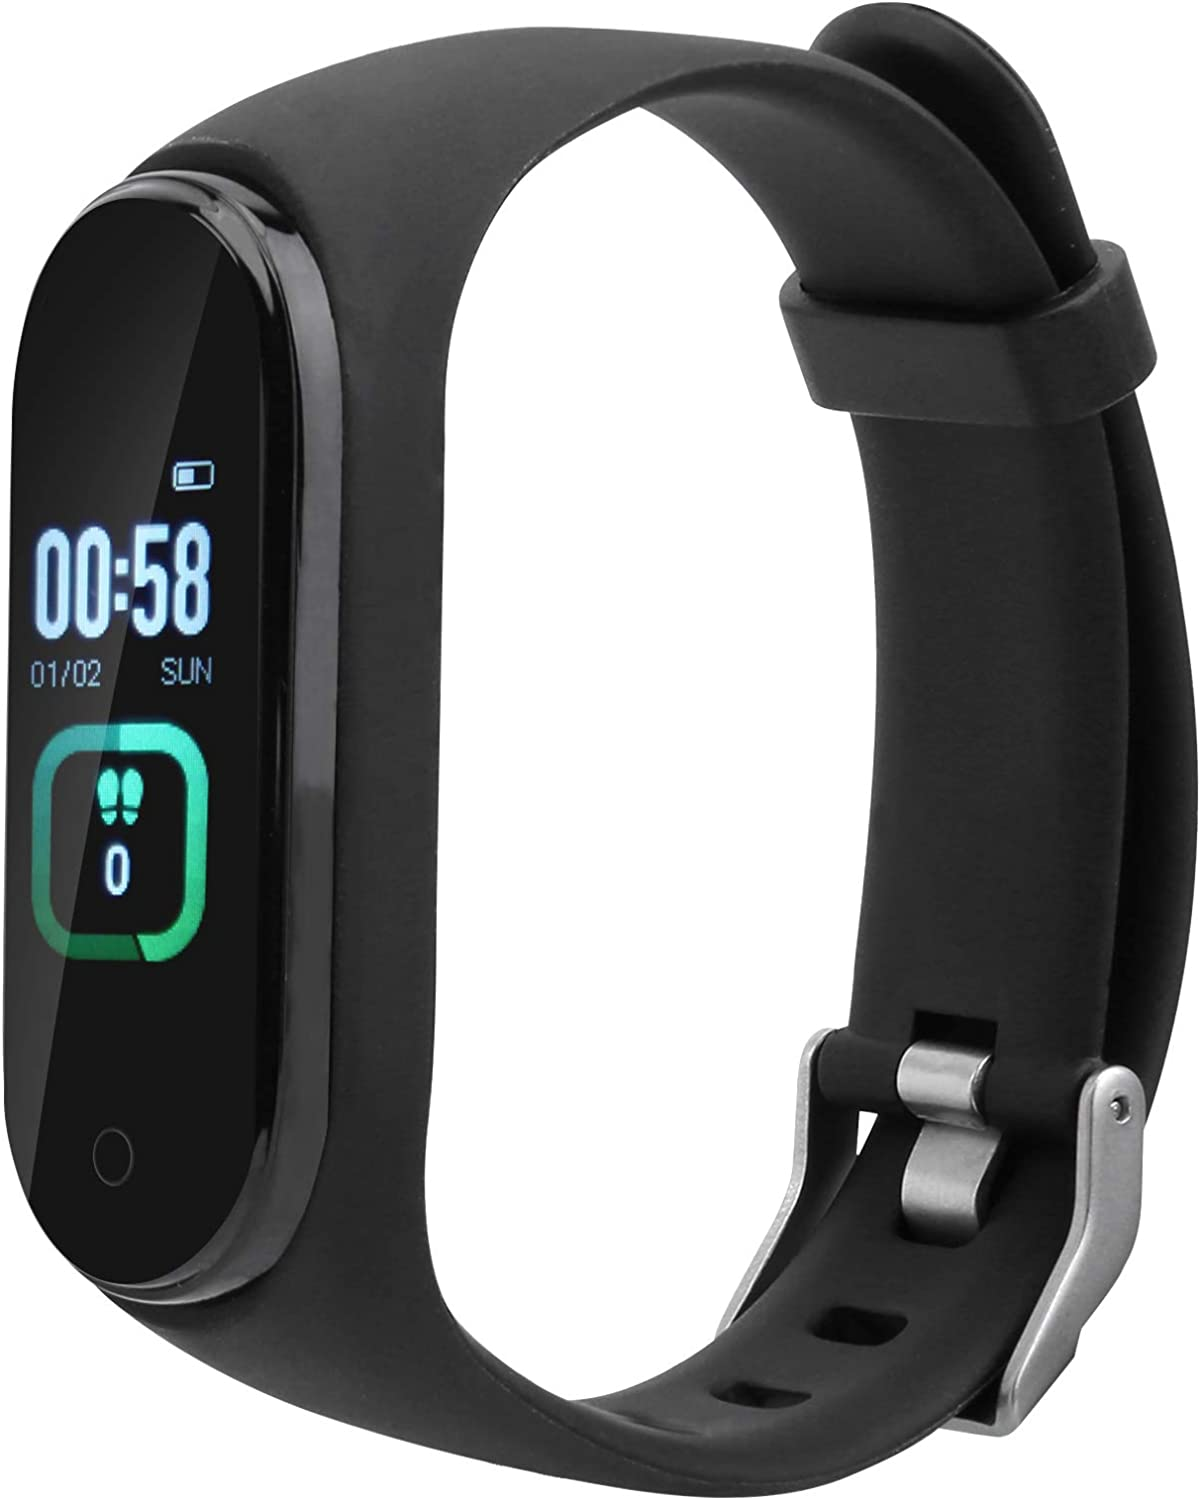 Shipenophy Wearable Hardware Monitor Smart Changes Heal Bracelet Classic Special price